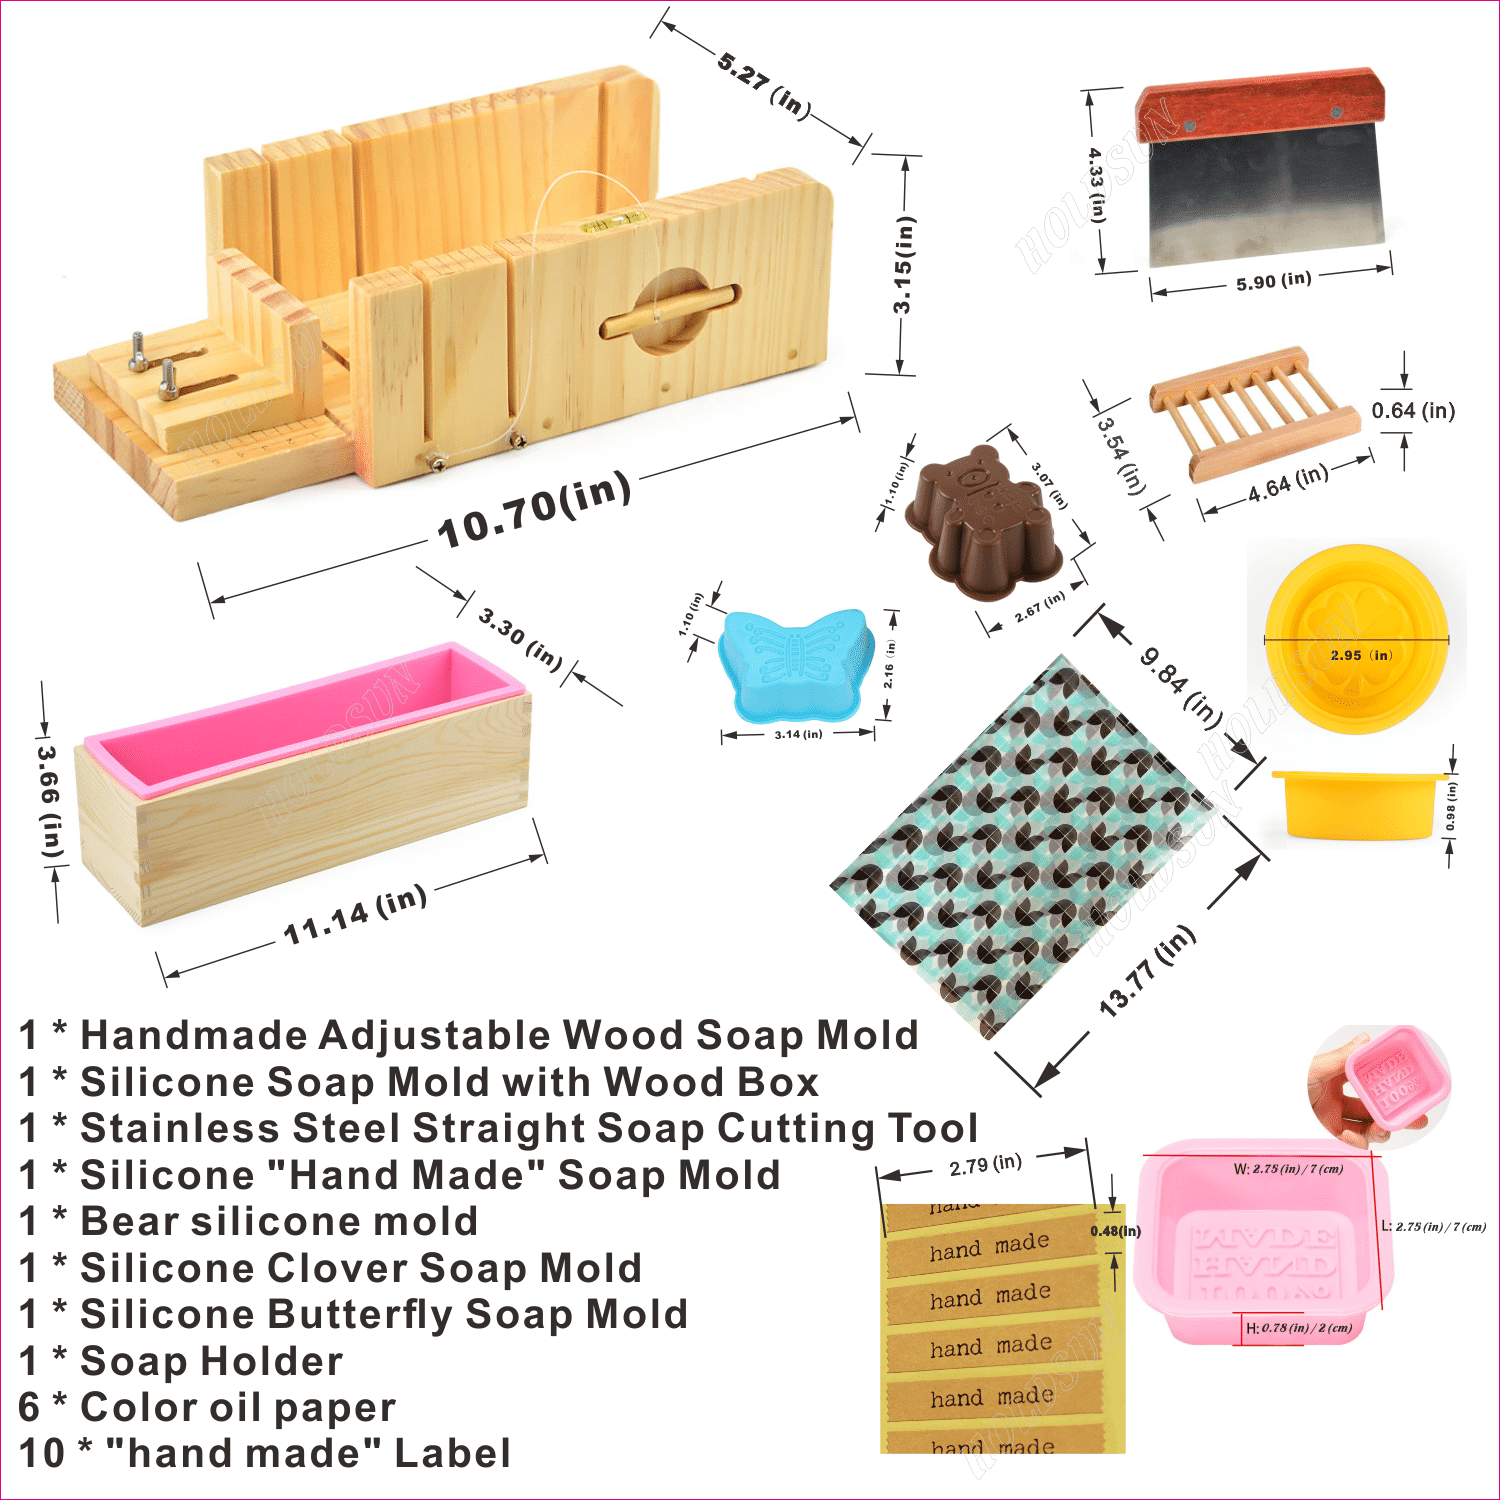 Wood Soap Molds - Handmade Adjustable Wood Soap Molds with Soap Cutting Tool and Silicone Molds